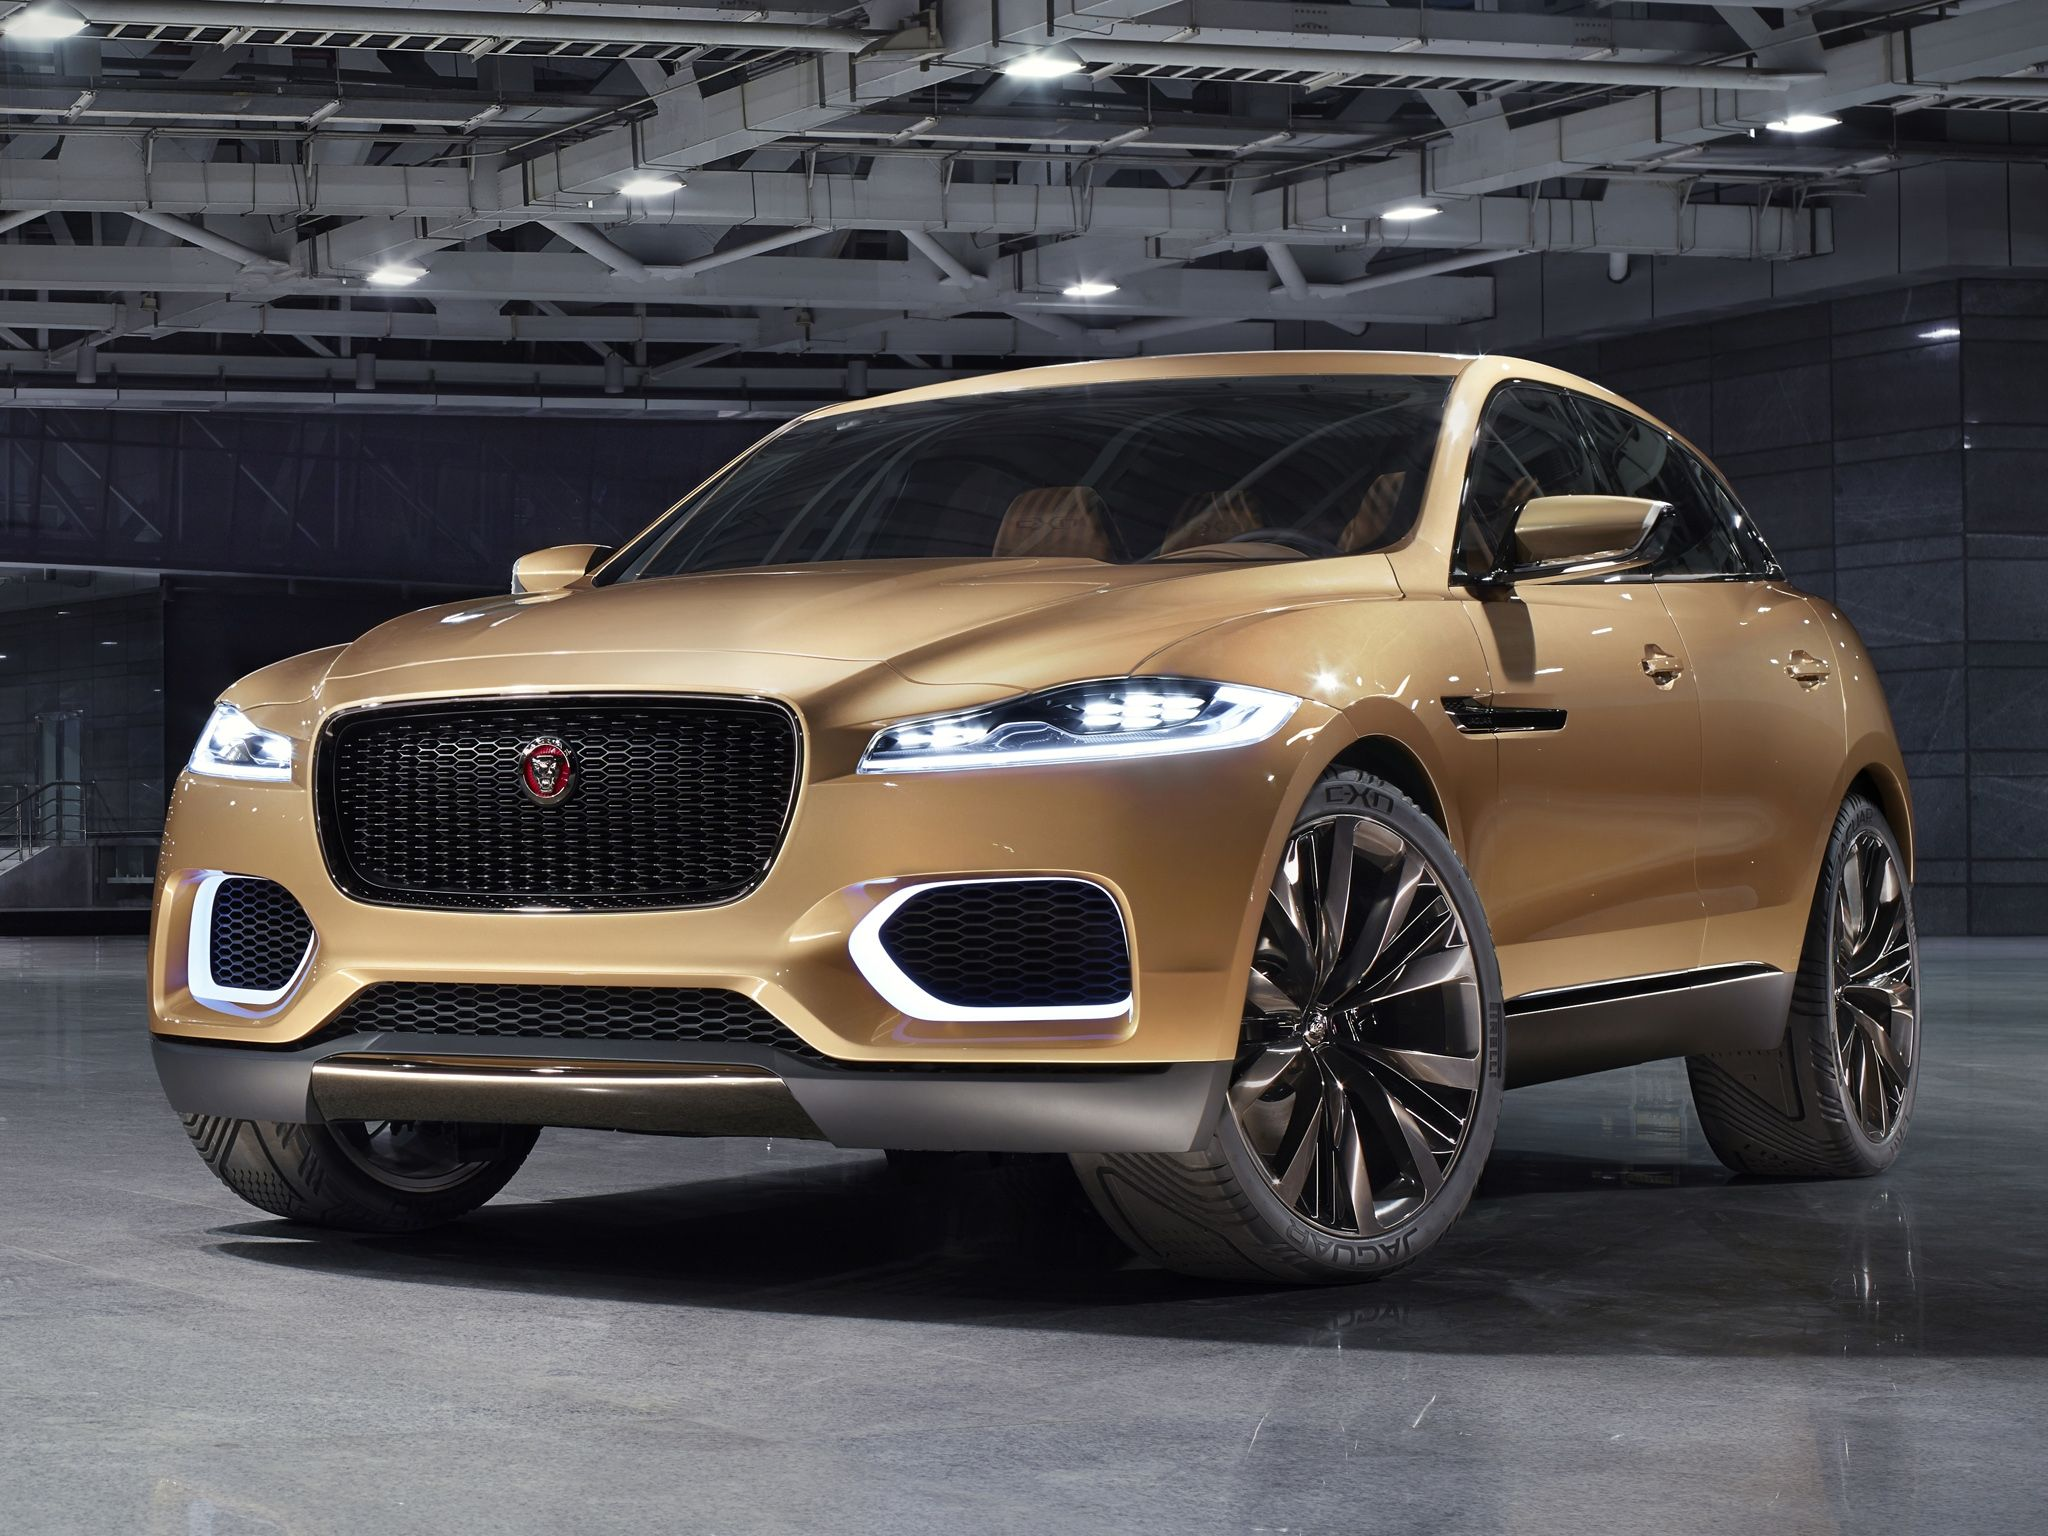 revealed pace jaguar teaser magazine by at of news show frankfurt the enormous shots standard shows is release car motor fpace f fit events touchscreen price